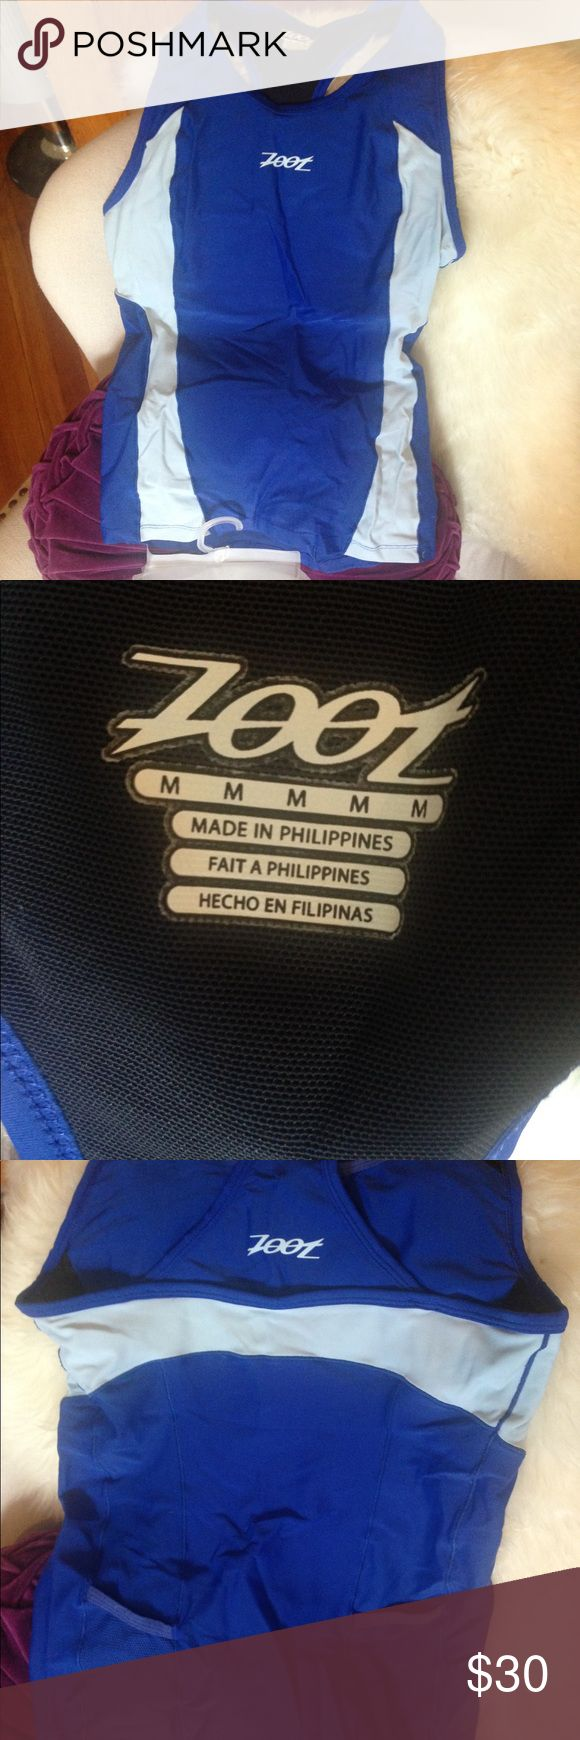 Zoot triathlon, bike, athletic top Impeccable condition. Built in sports bra, two back water/food pockets, compression, awesome racing gear. Zoot Other